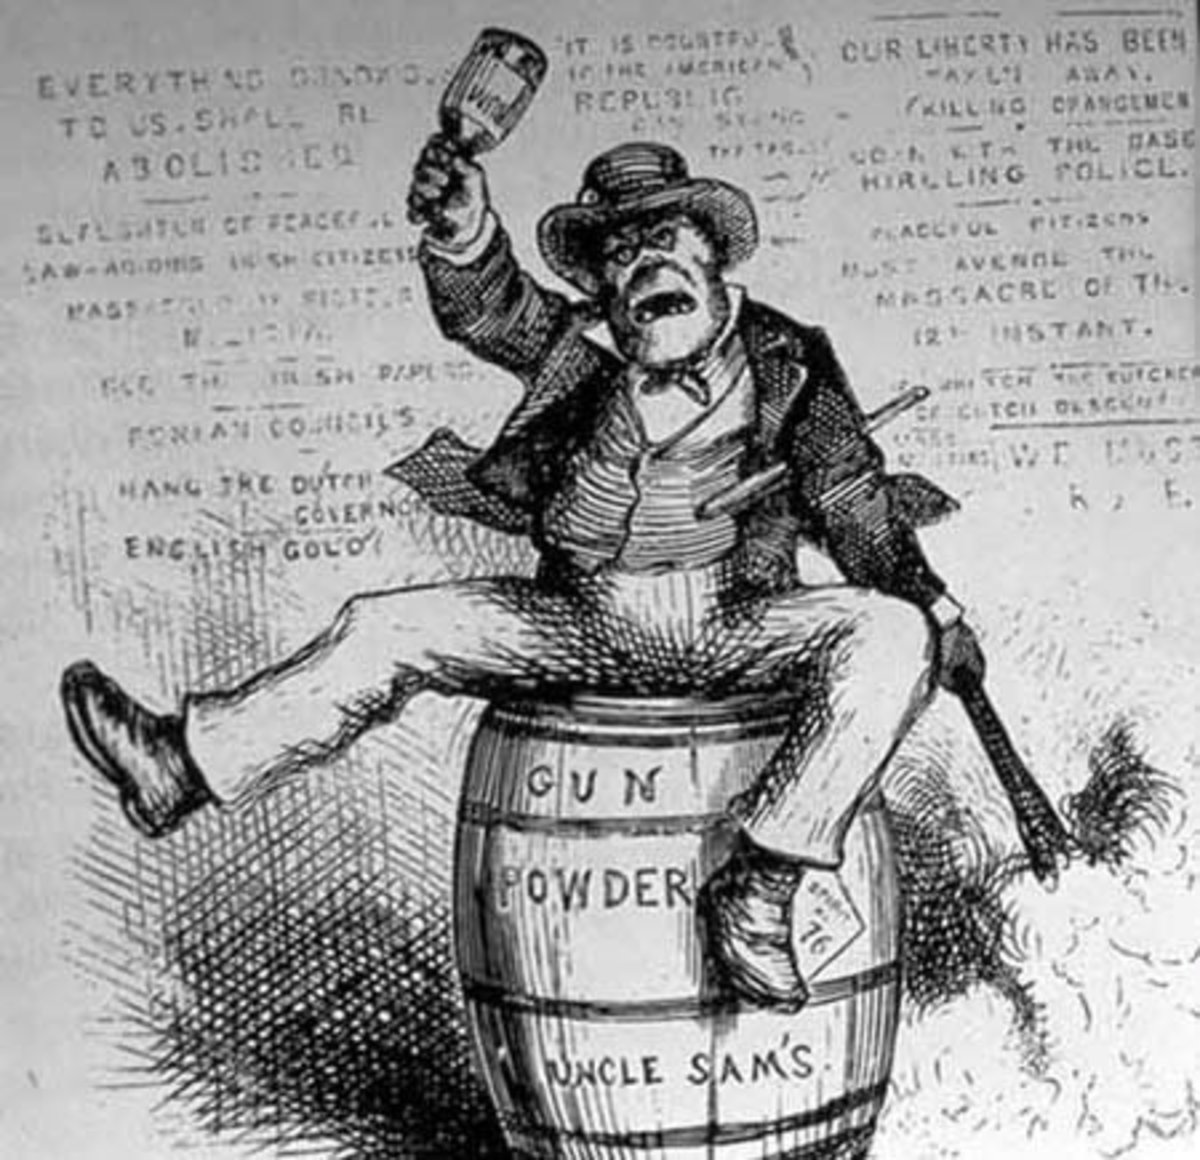 A racist cartoon depiction of an Irish immigrant.